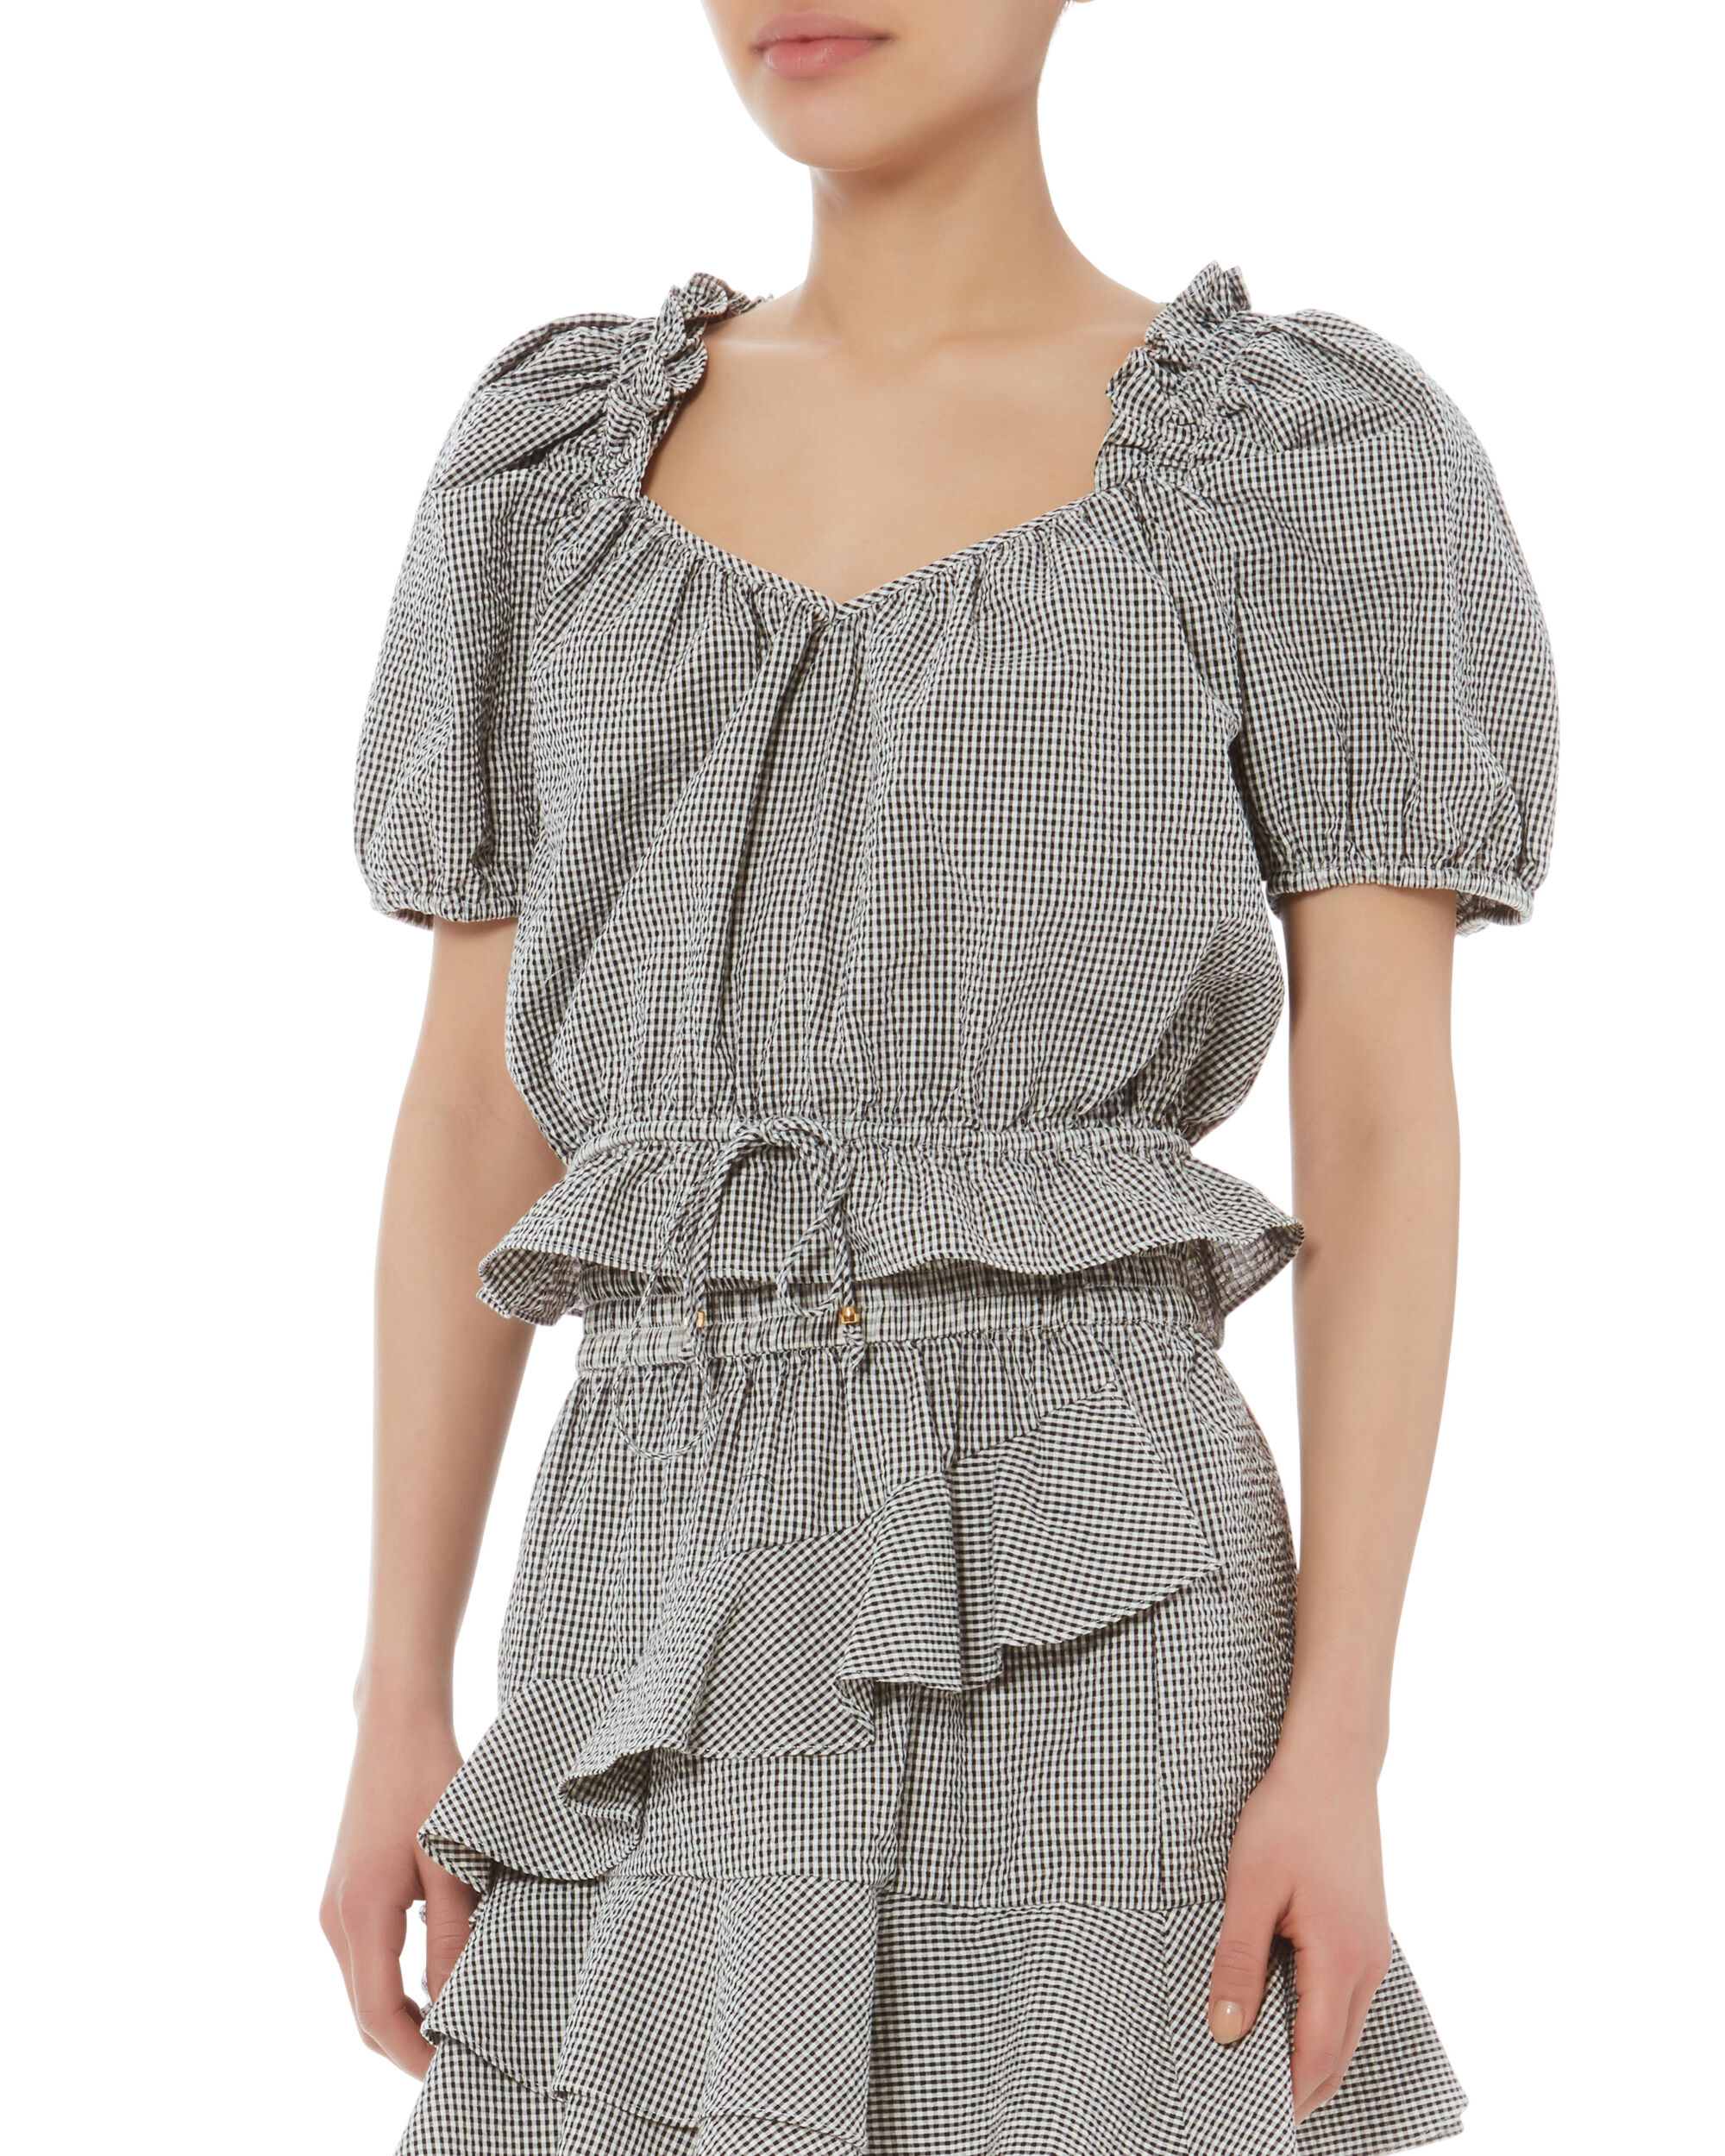 Greta Cropped Puff-Sleeved Top, BLK/WHT, hi-res